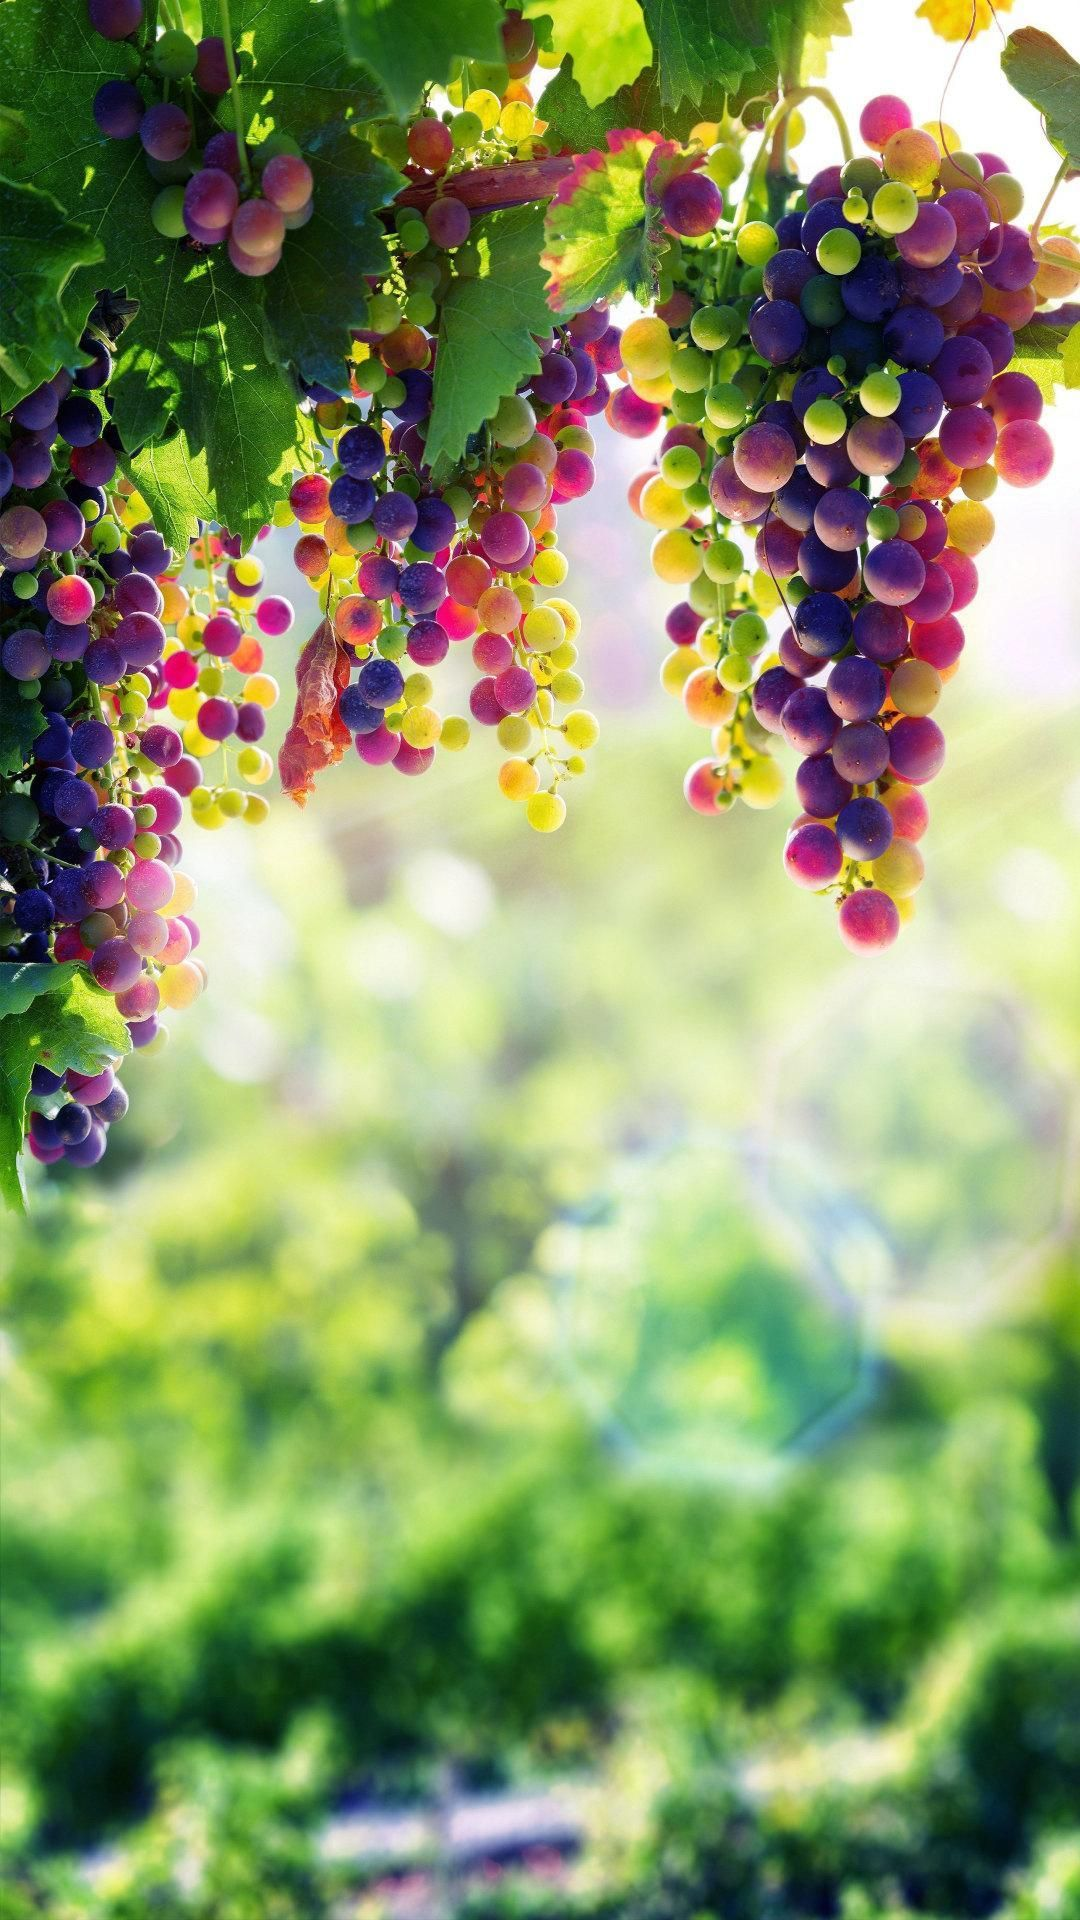 Grapes Wallpaper Best 4k For Android Apk Download Grape Wallpaper Grapes Fruit Wallpaper